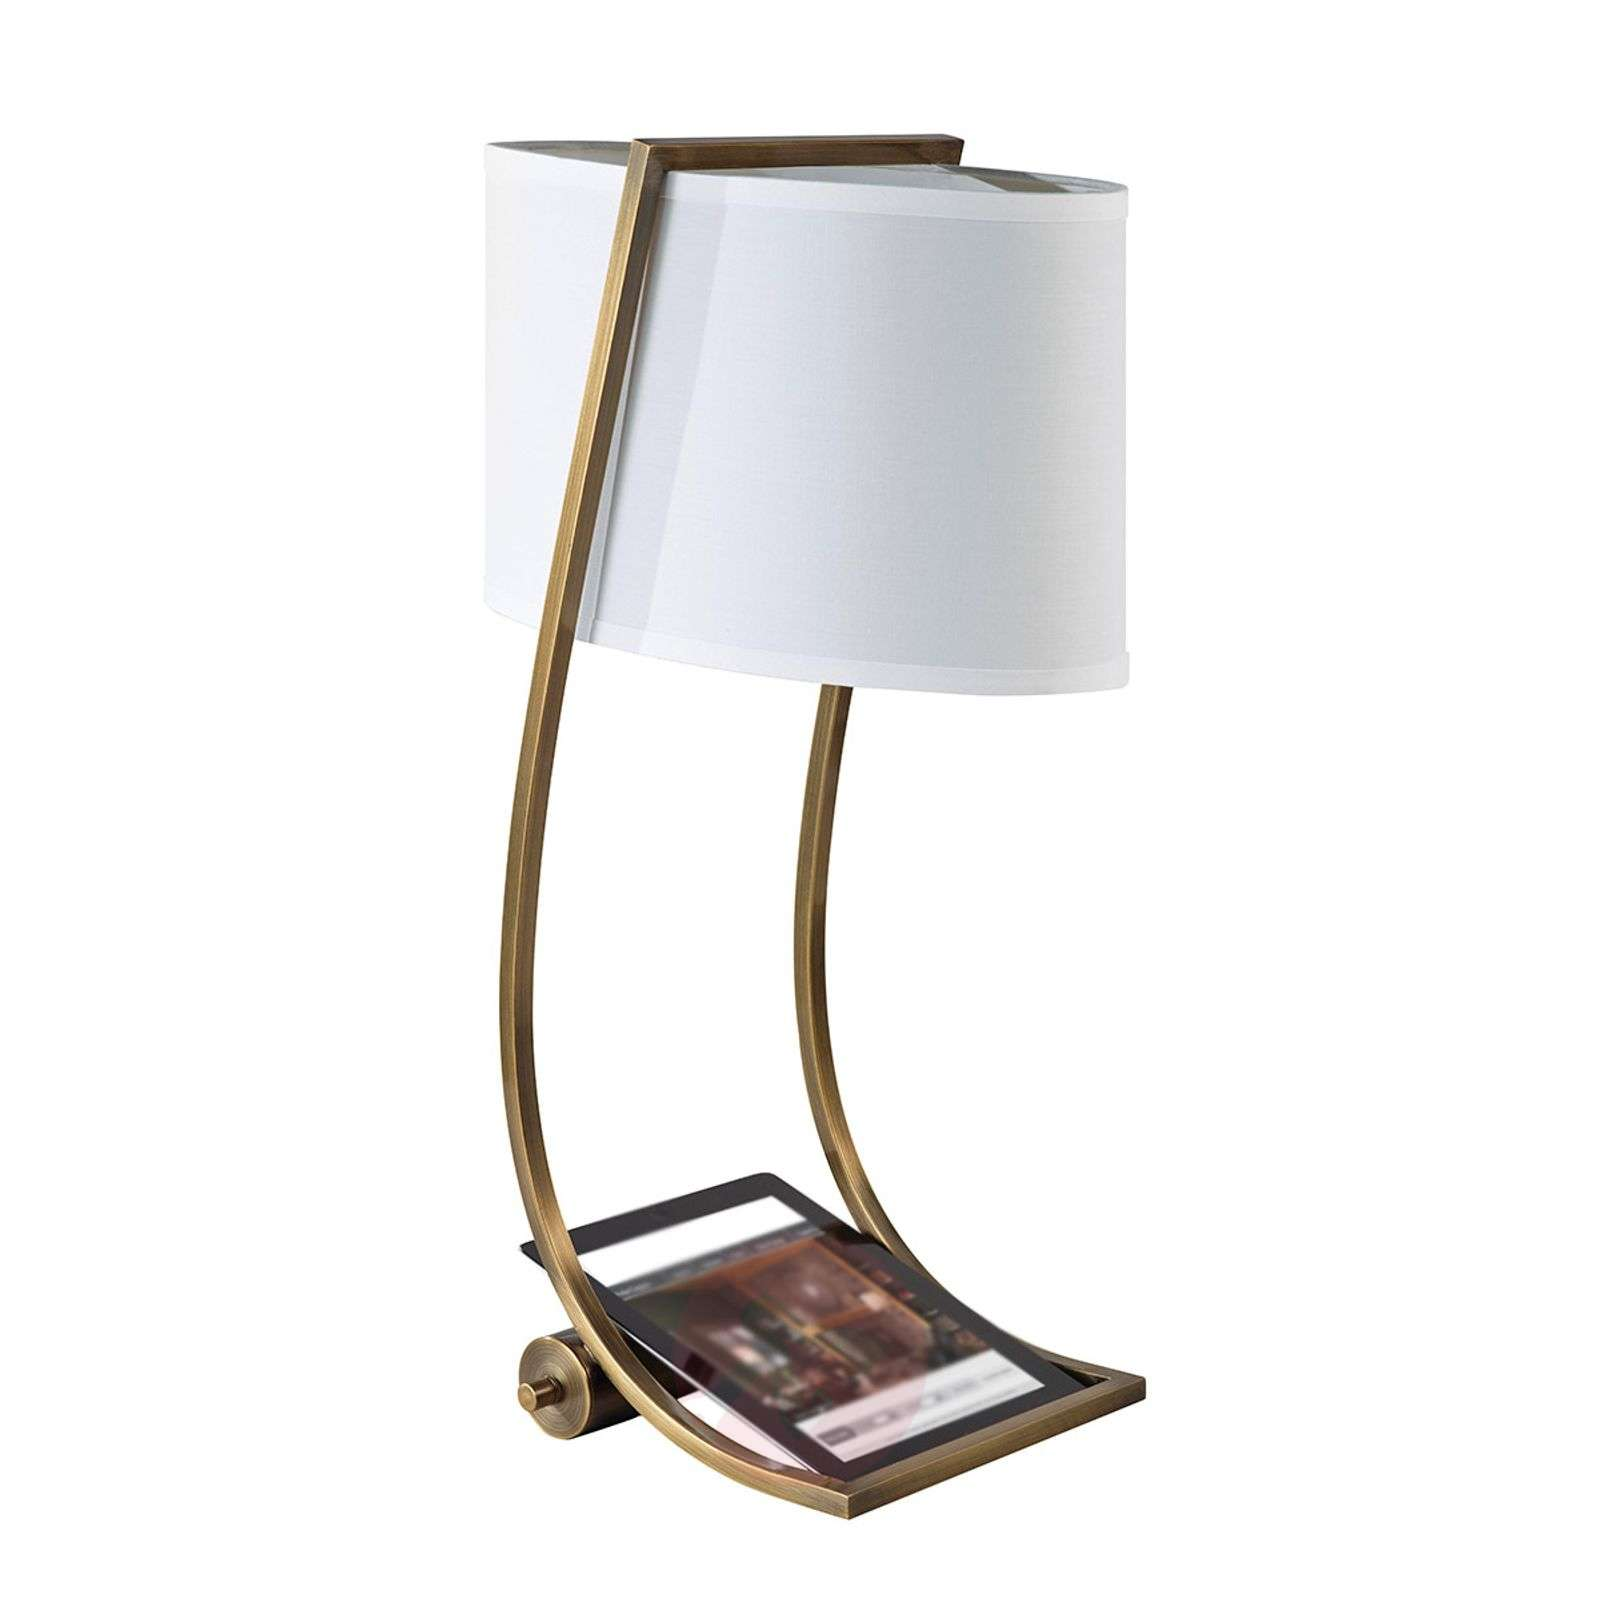 verona somette in finish features usb less table home port built garden subcat lamps product lamp light for concrete collection overstock with